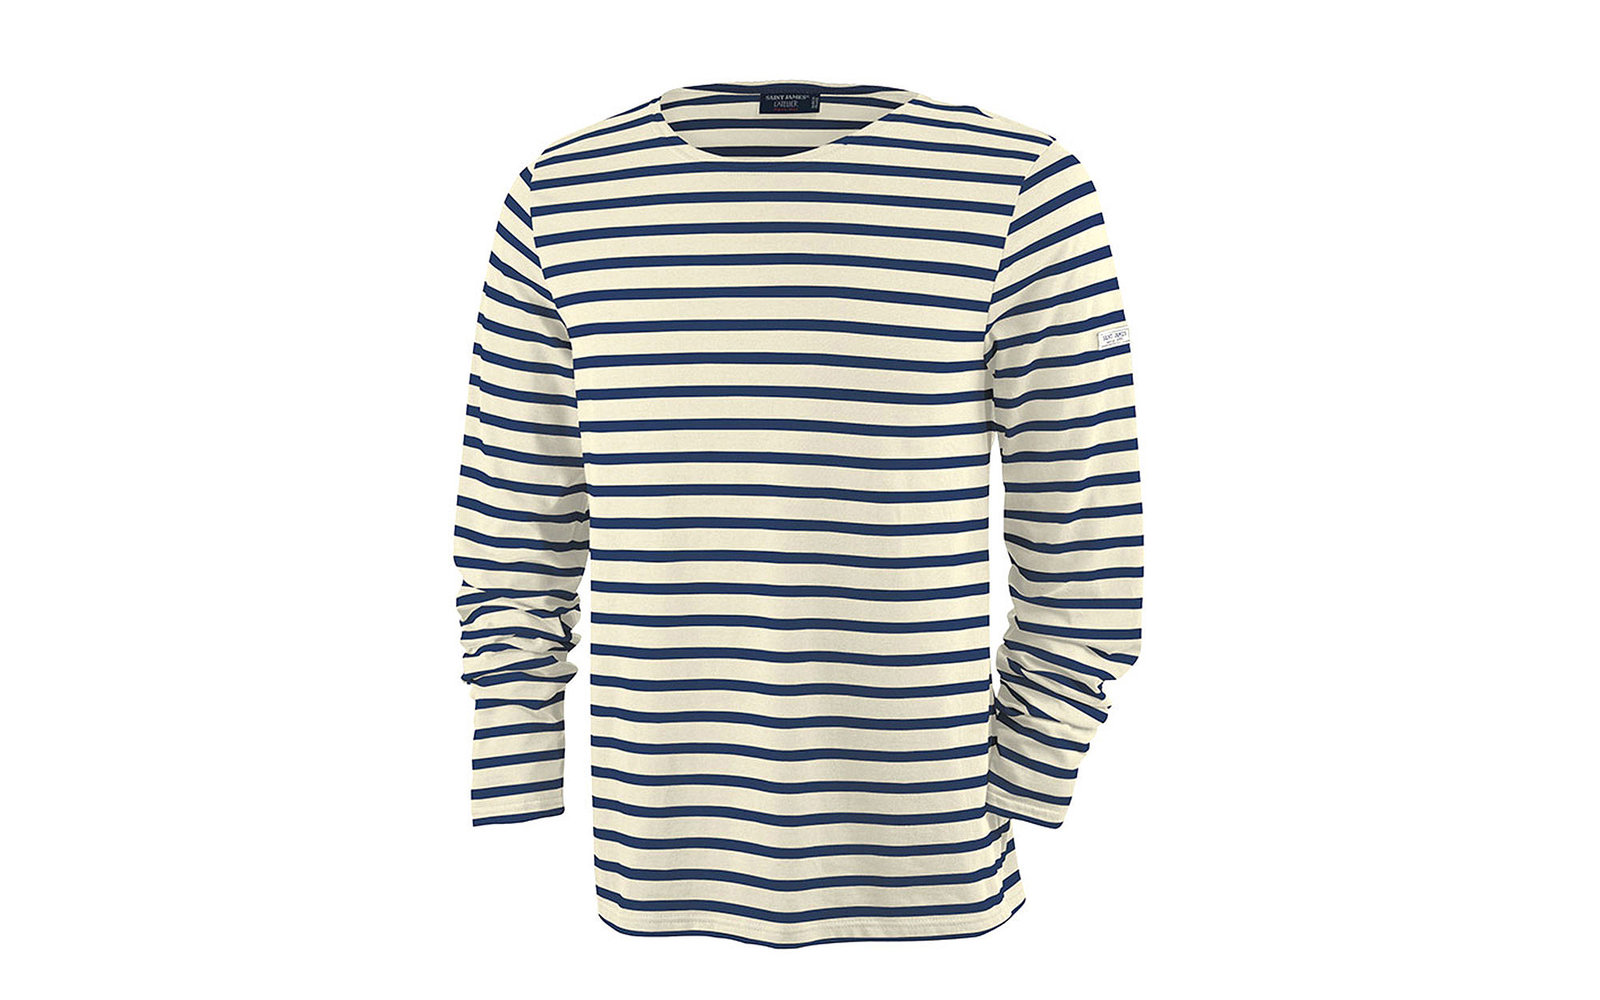 Saint James Minquiers Moderne Unisex Breton Striped Shirt (Ecru/Navy)